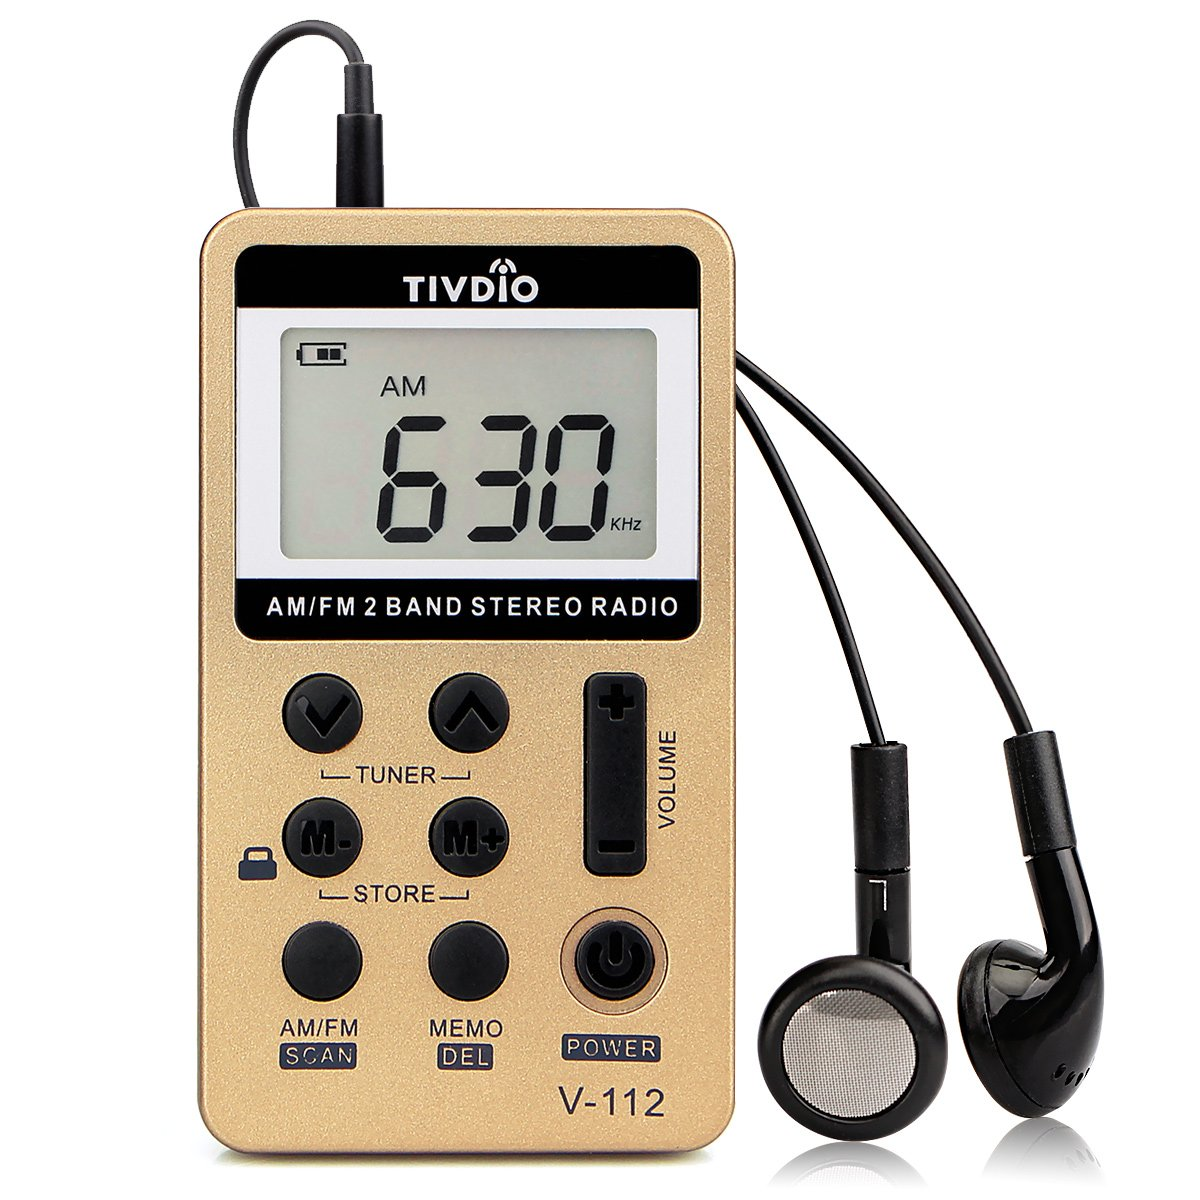 Retekess V-112 Portable AM FM Stereo Radio with Earphones Pocket Mini Digital Tuning Rechargeable Battery LCD Display for Walk(Gold)